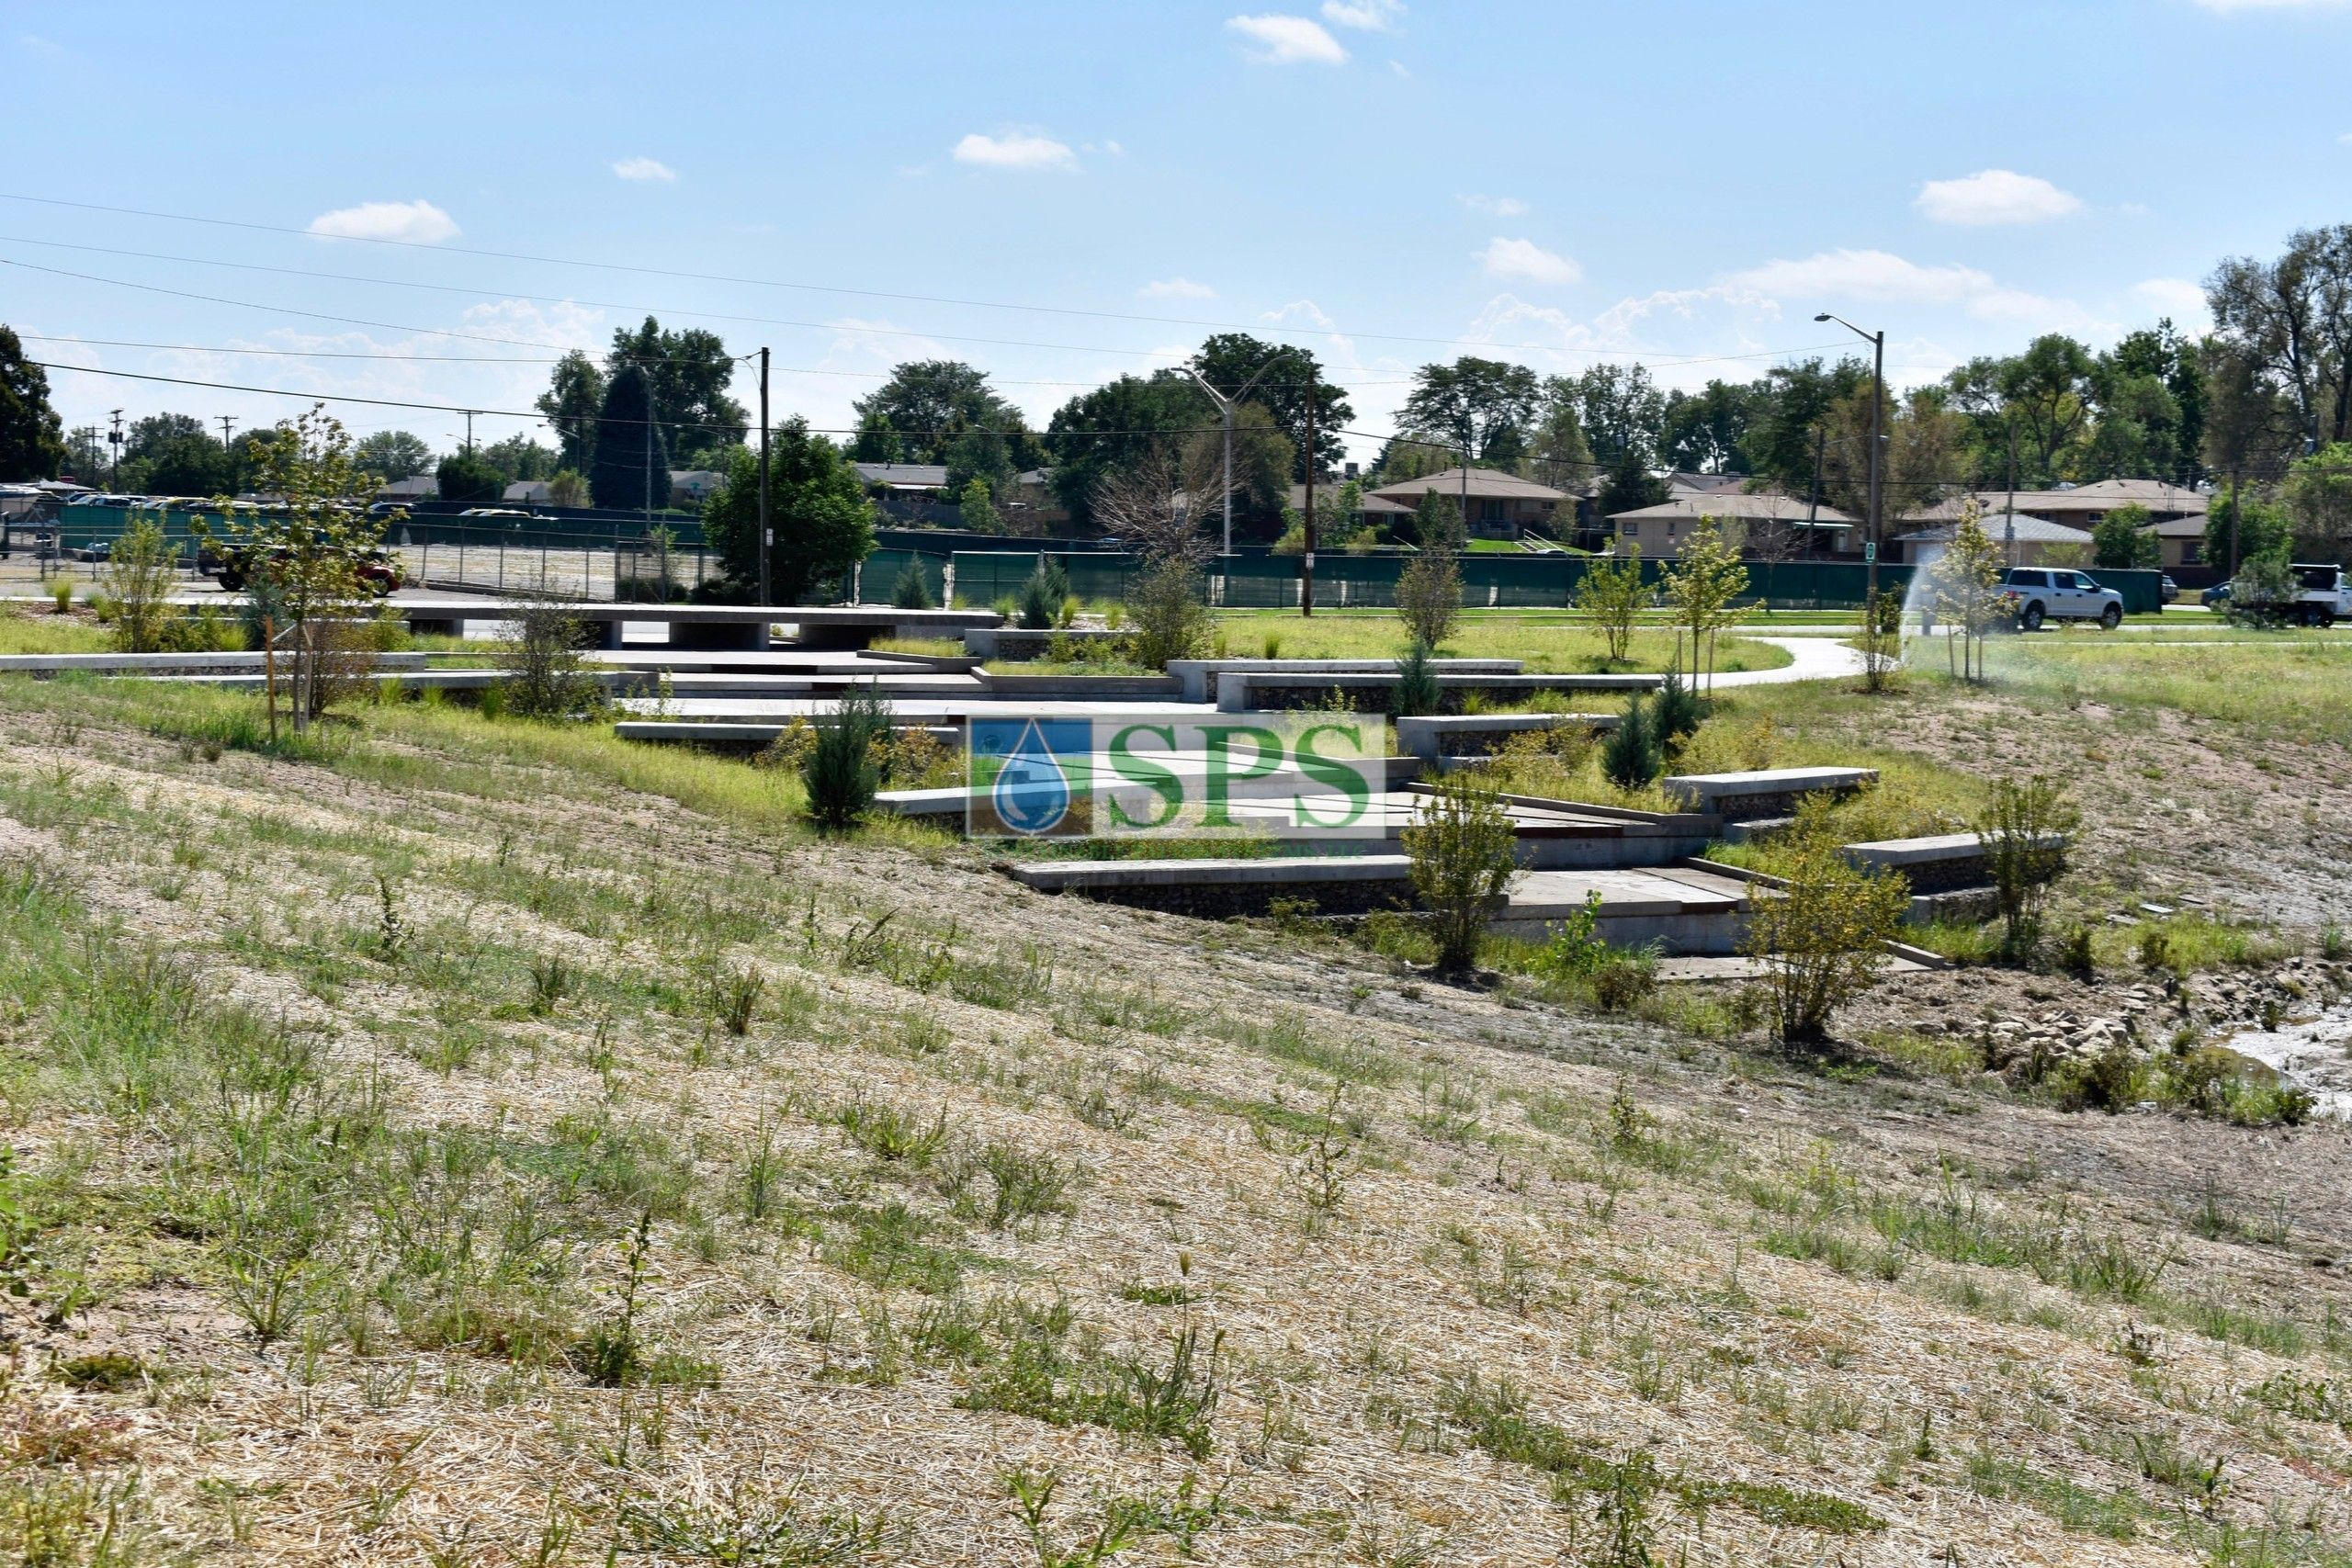 Long view of gabion tiered drop structure detention pond located in Denver, CO that was planted with varying grasses for greenspace and stormwater management using Sustainable Paving Systems Partial Grasscrete System installation of a pervious monolithic cast-in-place concrete.